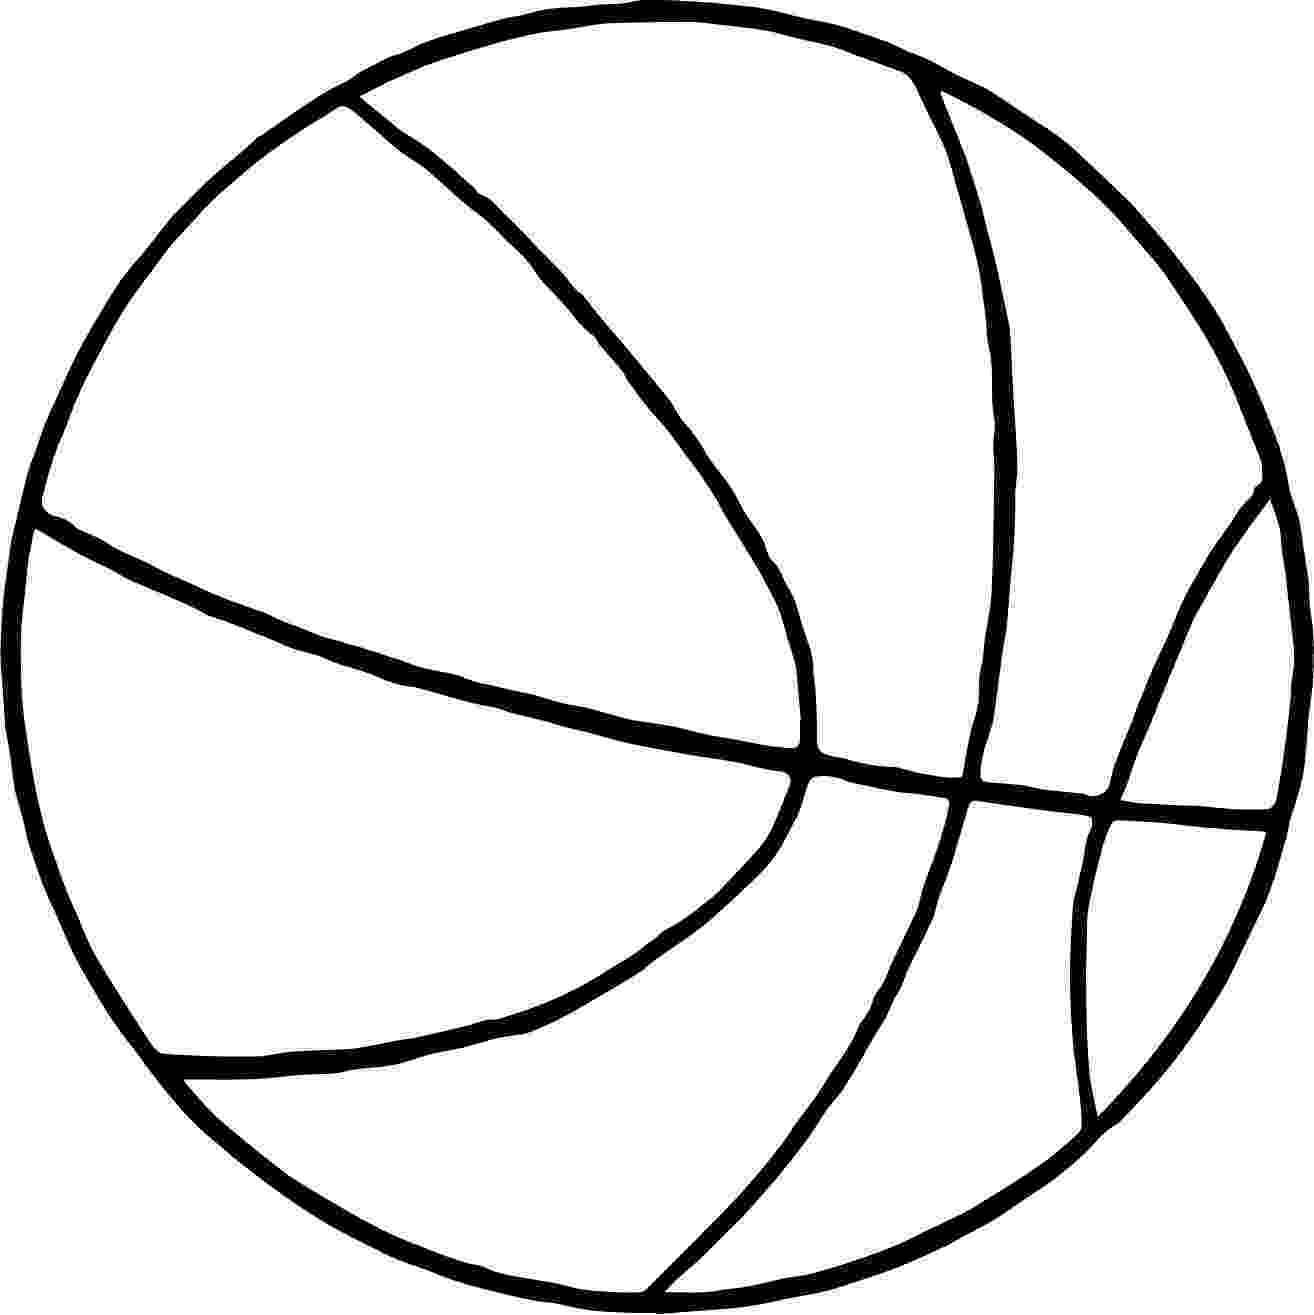 ball coloring pages basketball coloring pages to download and print for free pages ball coloring